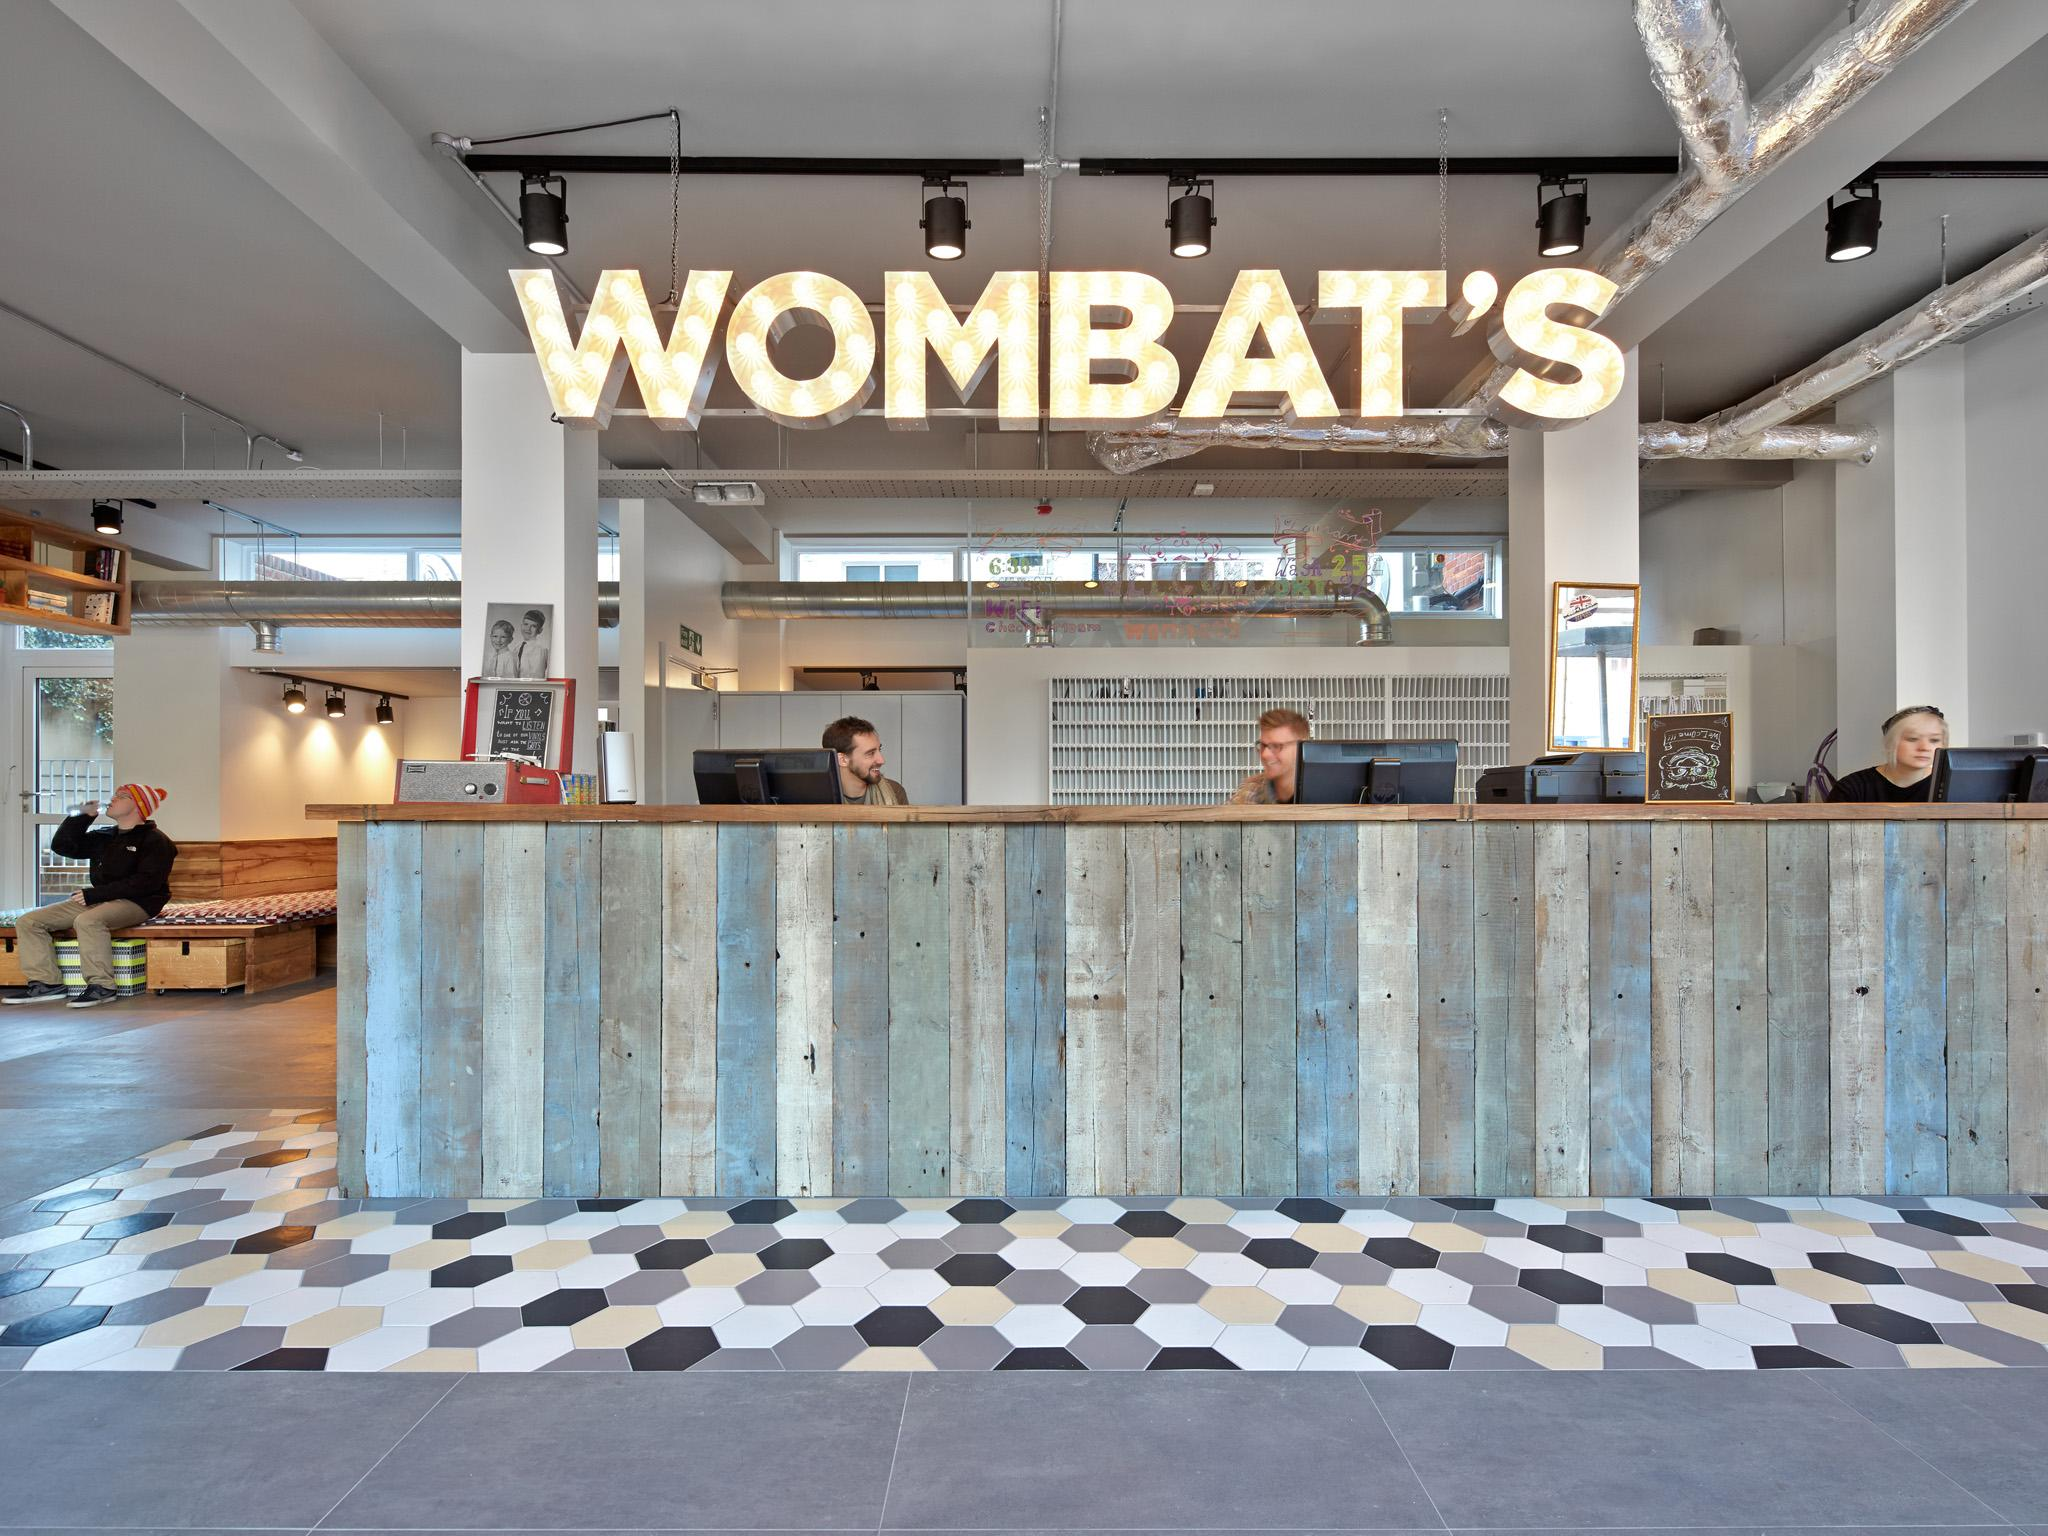 Wombats City Hostel London, London